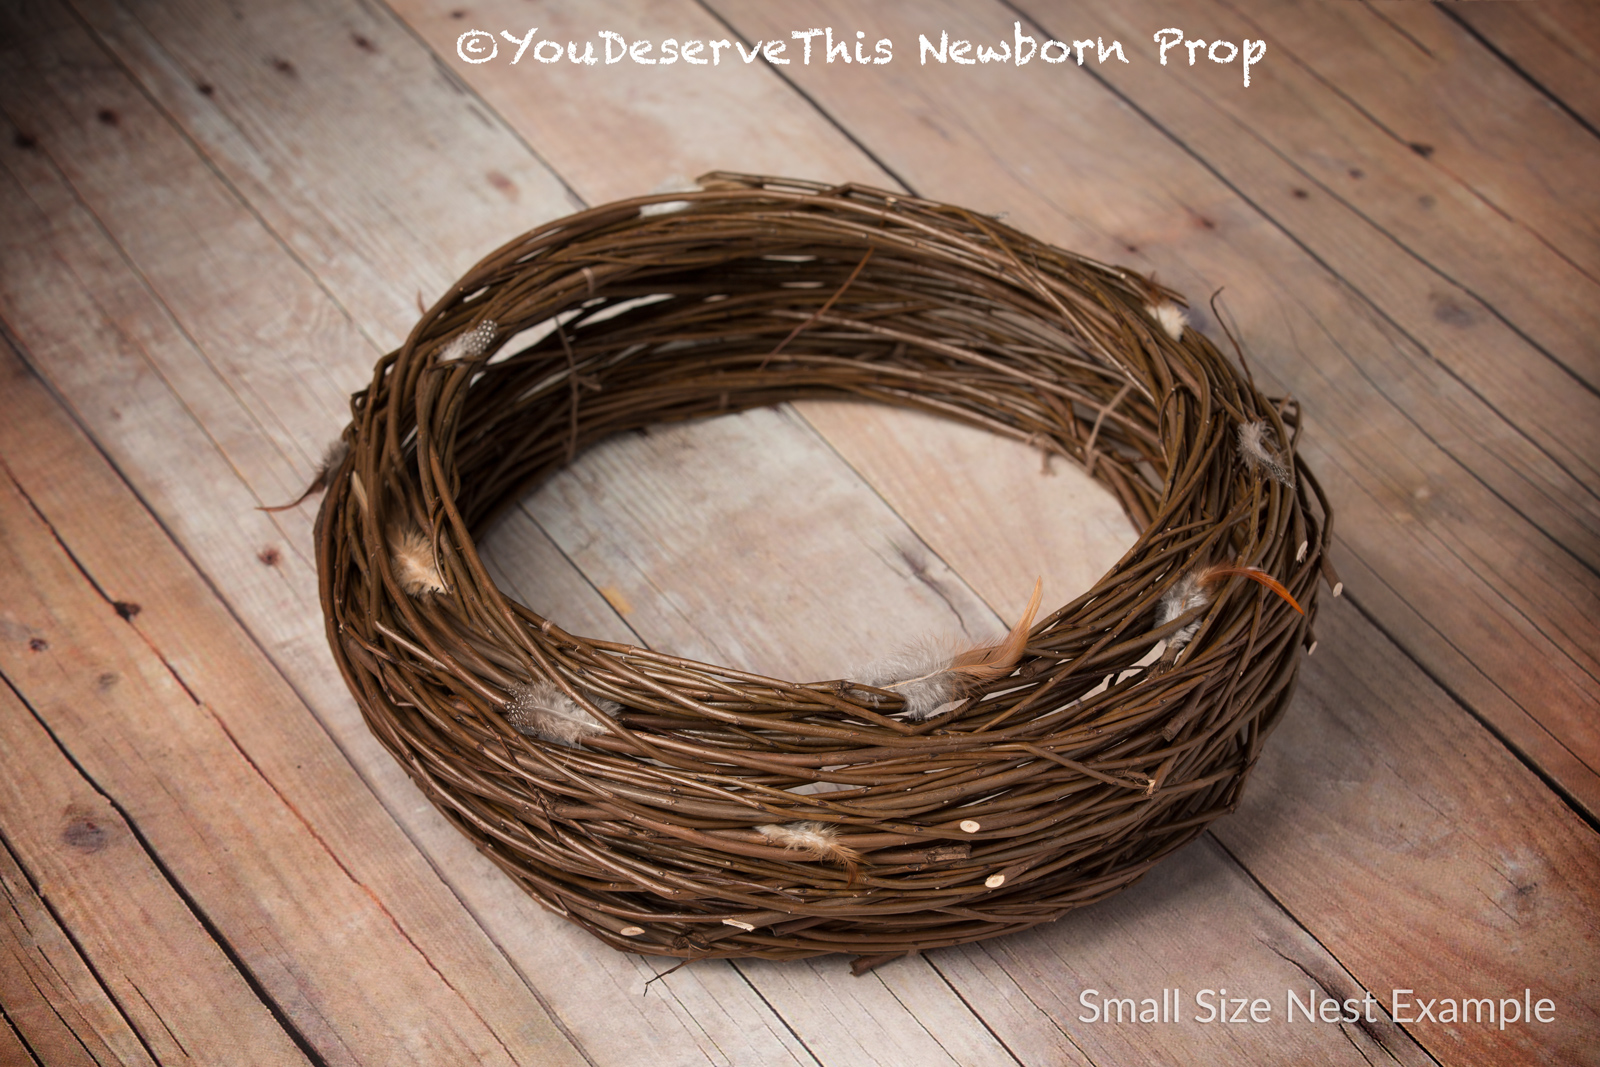 newborn photo props uk - nests for newborns - Nest Props -  Learn More